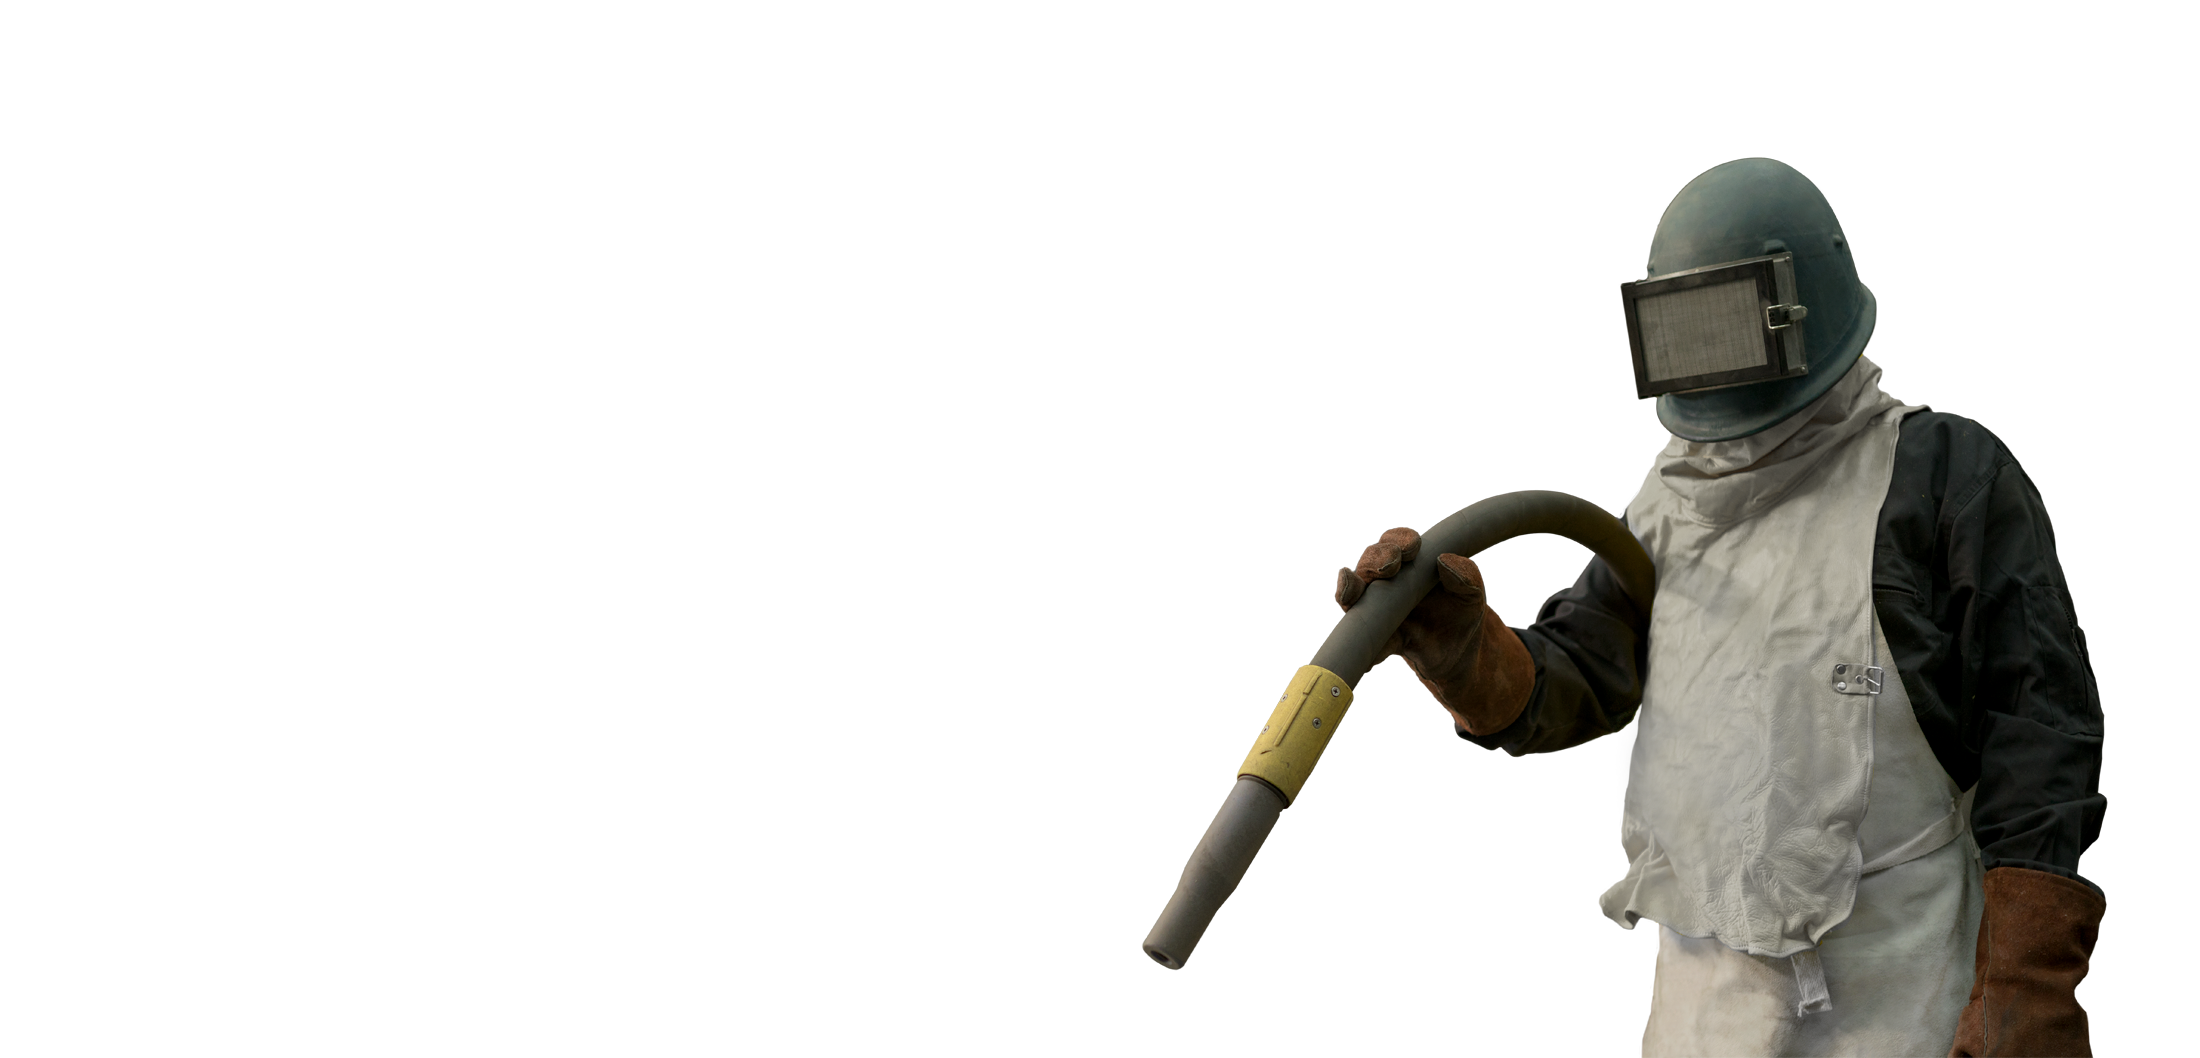 60 years of experience